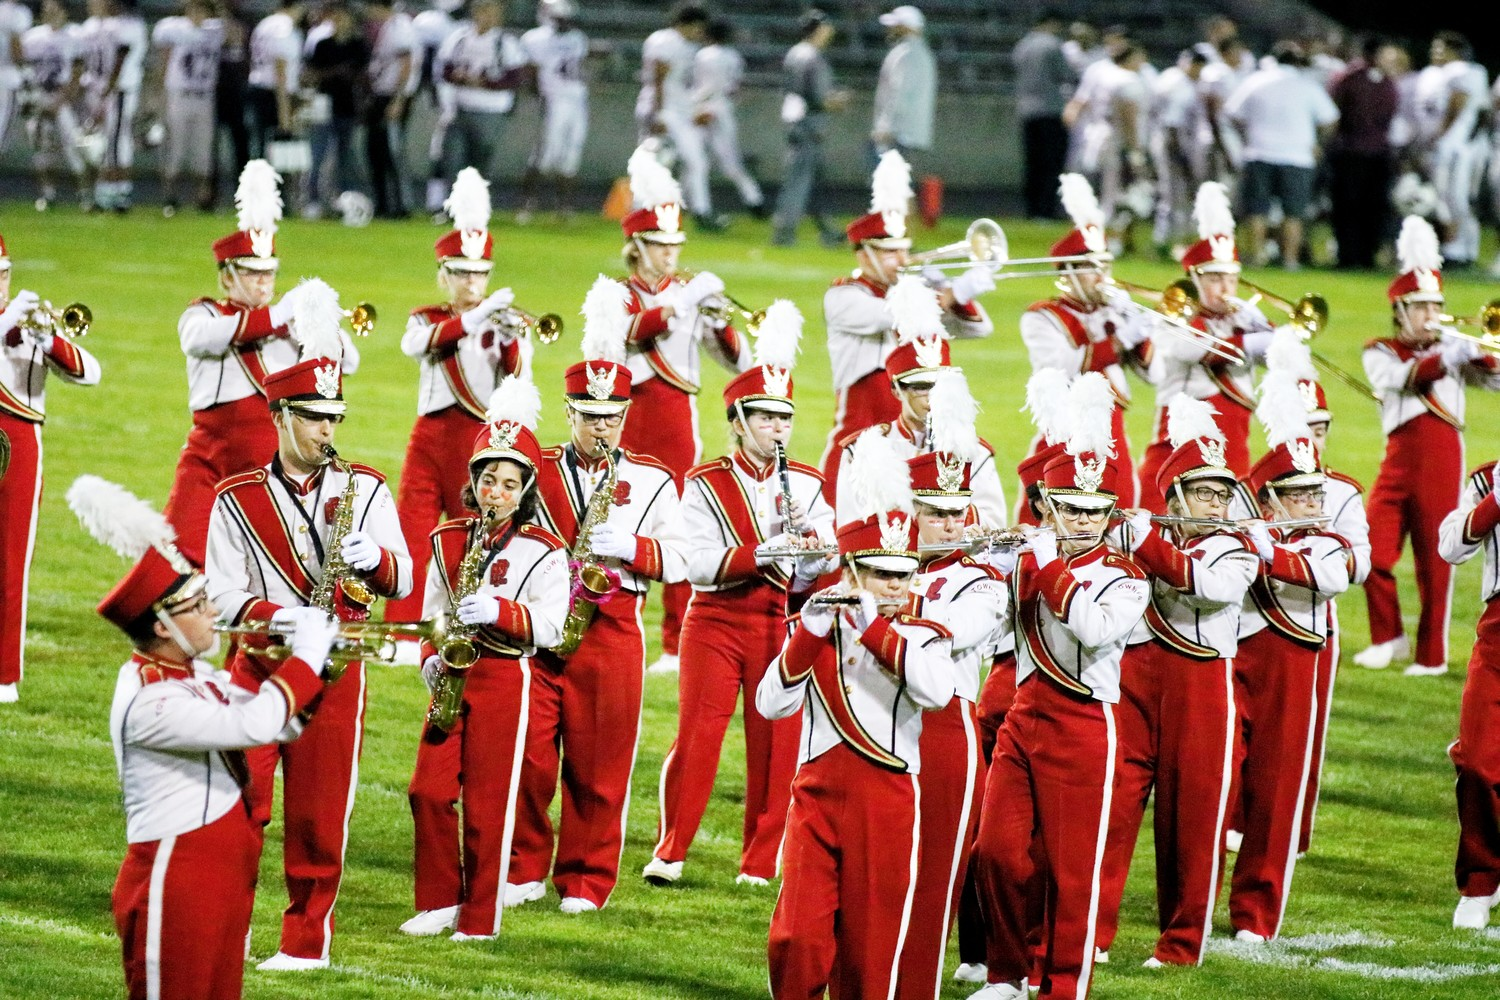 The Townie Marching Band entertaining at Friday night football games. Photo by Paul Tumidajski.